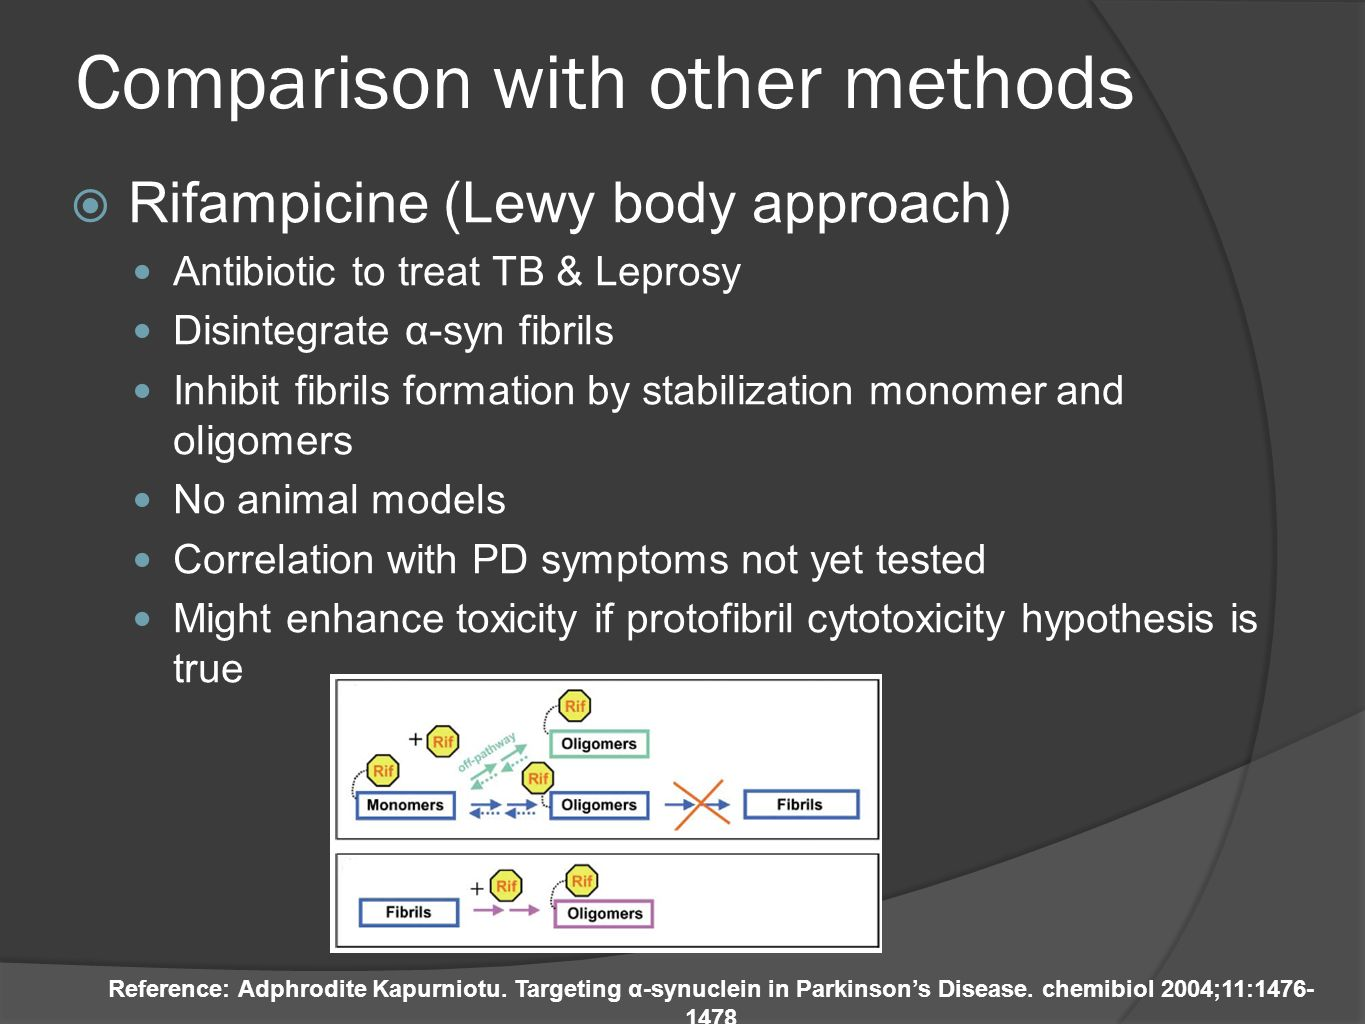 Comparison with other methods Rifampicine (Lewy body approach) Antibiotic to treat TB & Leprosy Disintegrate α-syn fibrils Inhibit fibrils formation b